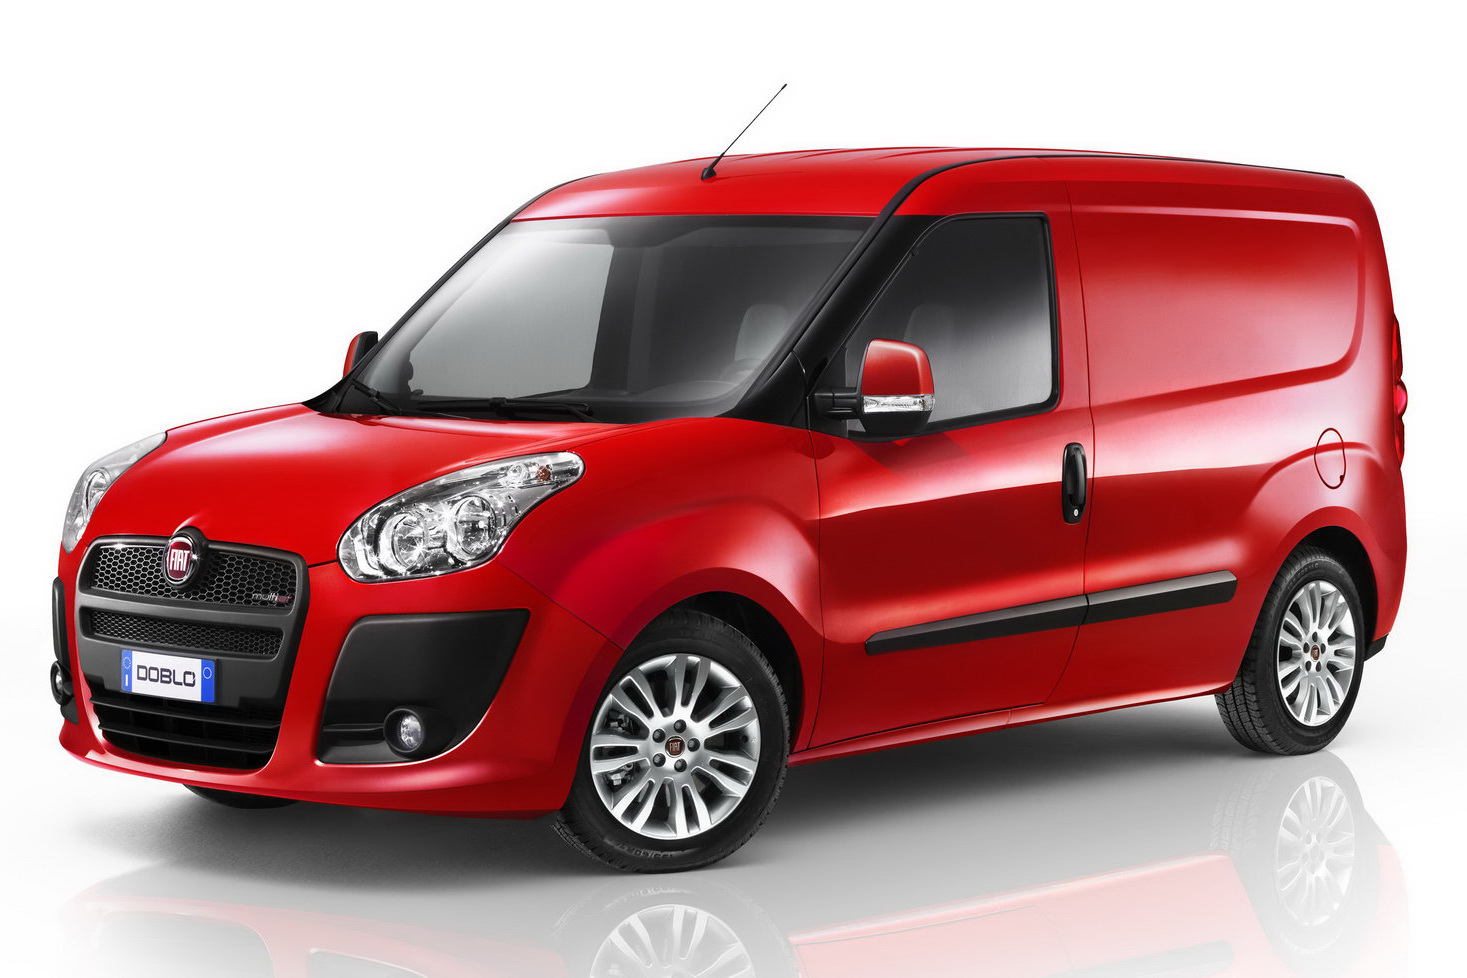 fiat doblo dati tecnici auto auto specifiche informazioni sul consumo di carburante dei veicoli. Black Bedroom Furniture Sets. Home Design Ideas